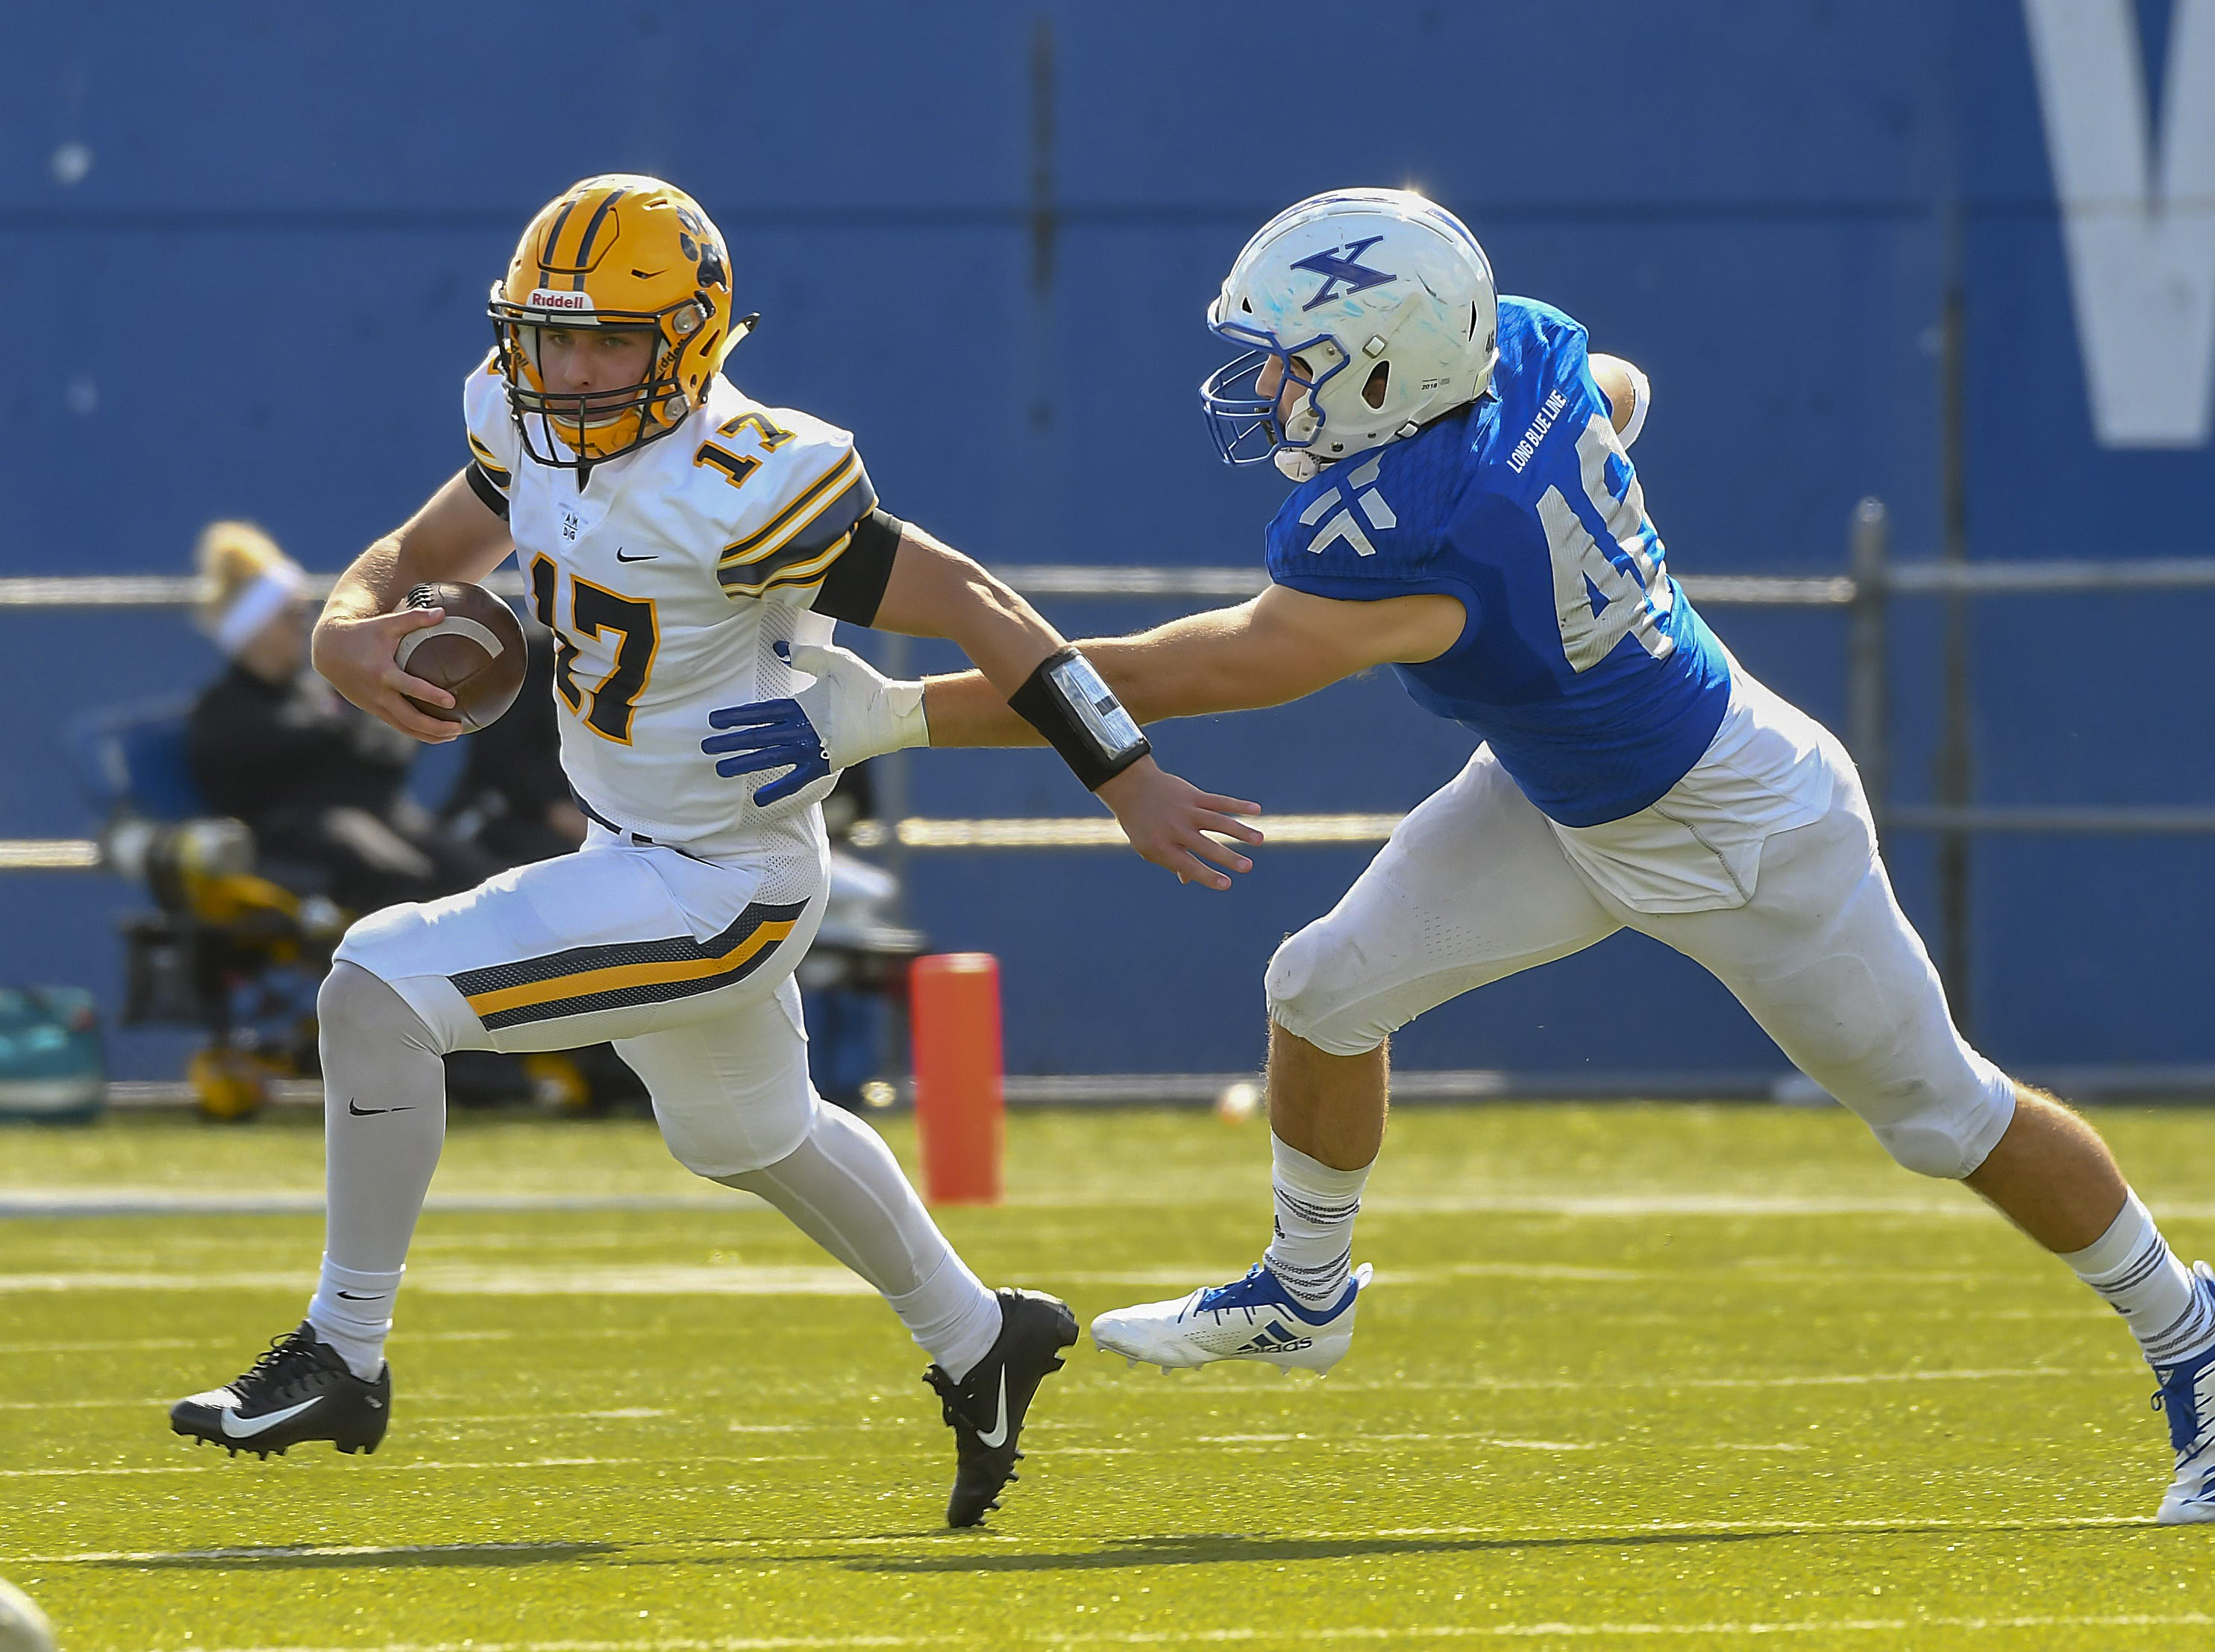 St I's quarterback Patrick Keane gets away from a St. X defender at St. Xavier High School, Saturday, October, 20 2018